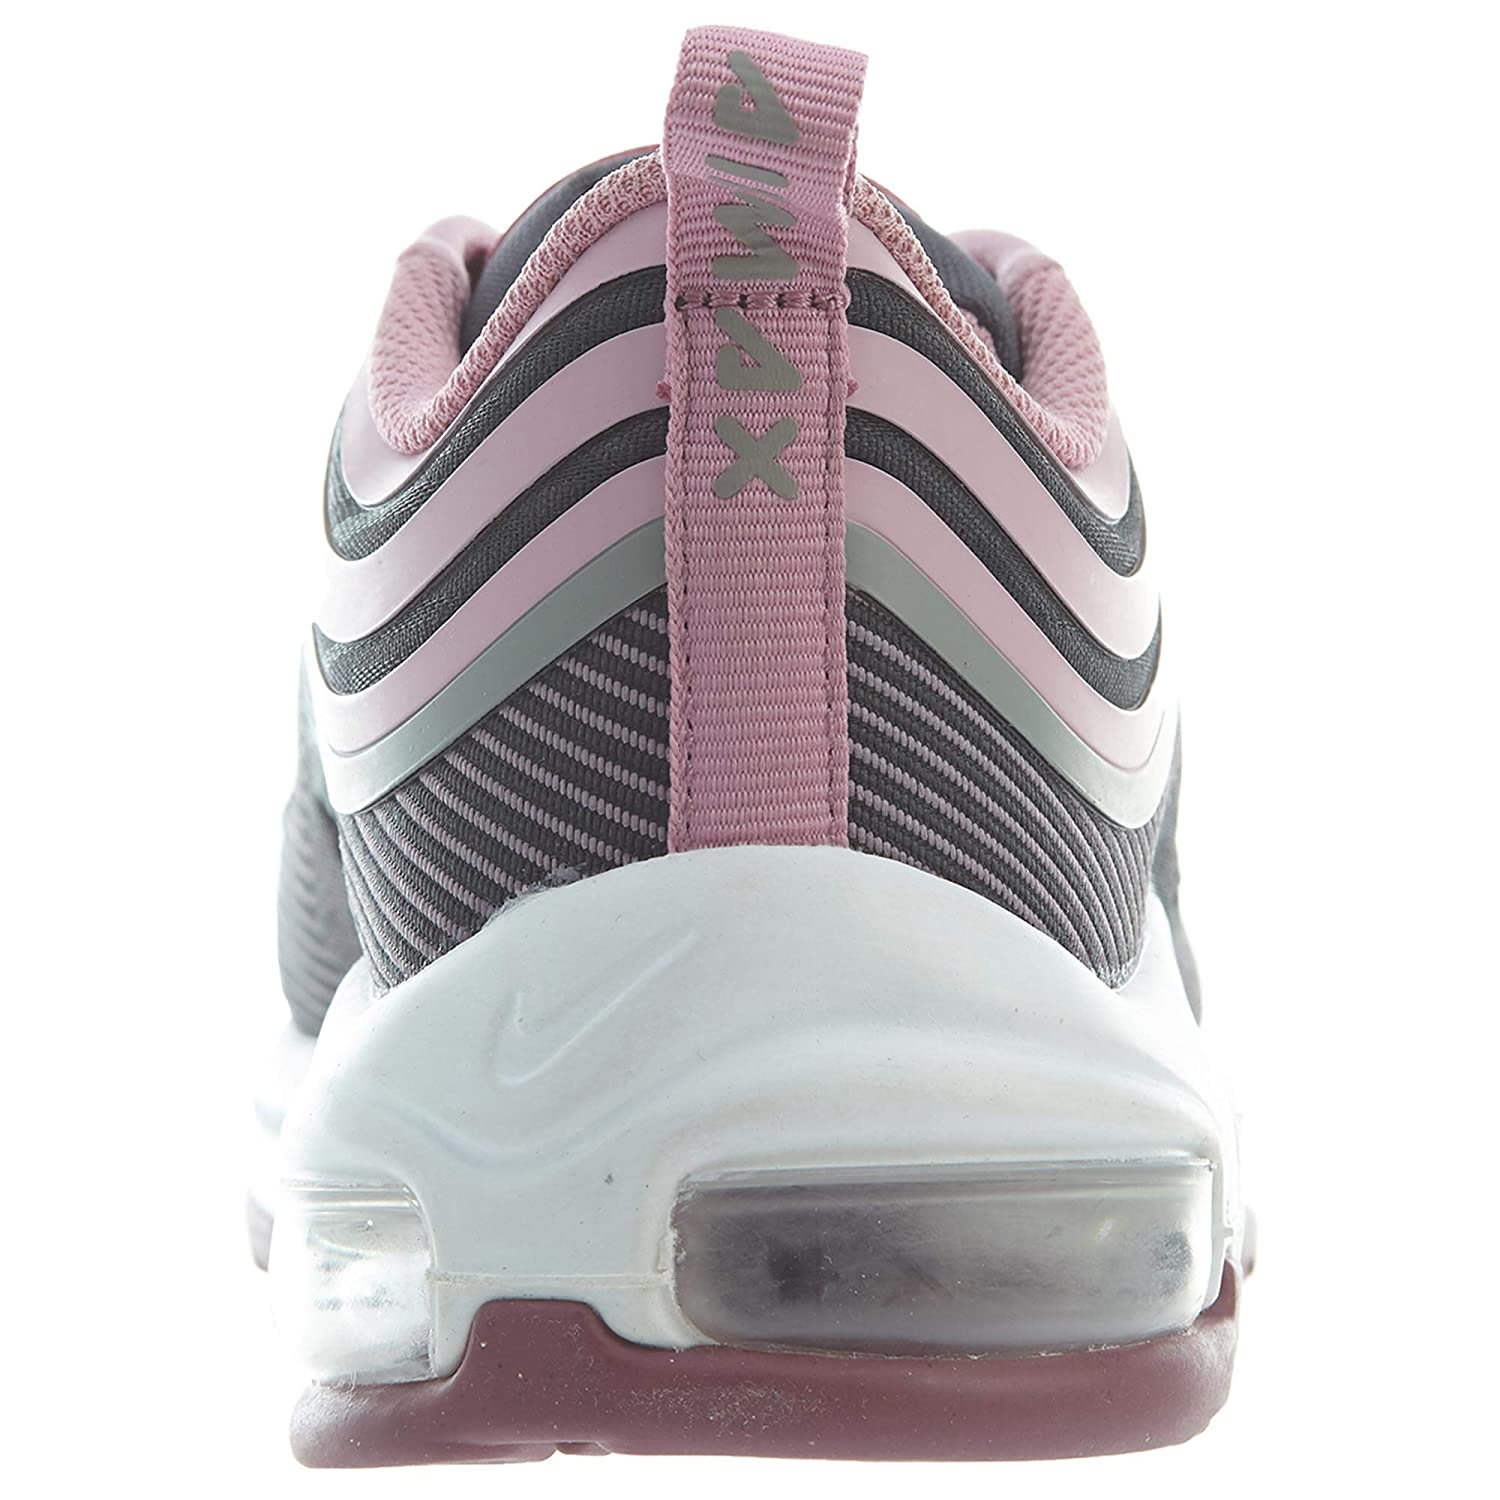 45b9e60e57 Amazon.com   Nike Air Max 97 Ultra 17 GS Running Trainers 917998 Sneakers  Shoes   Running